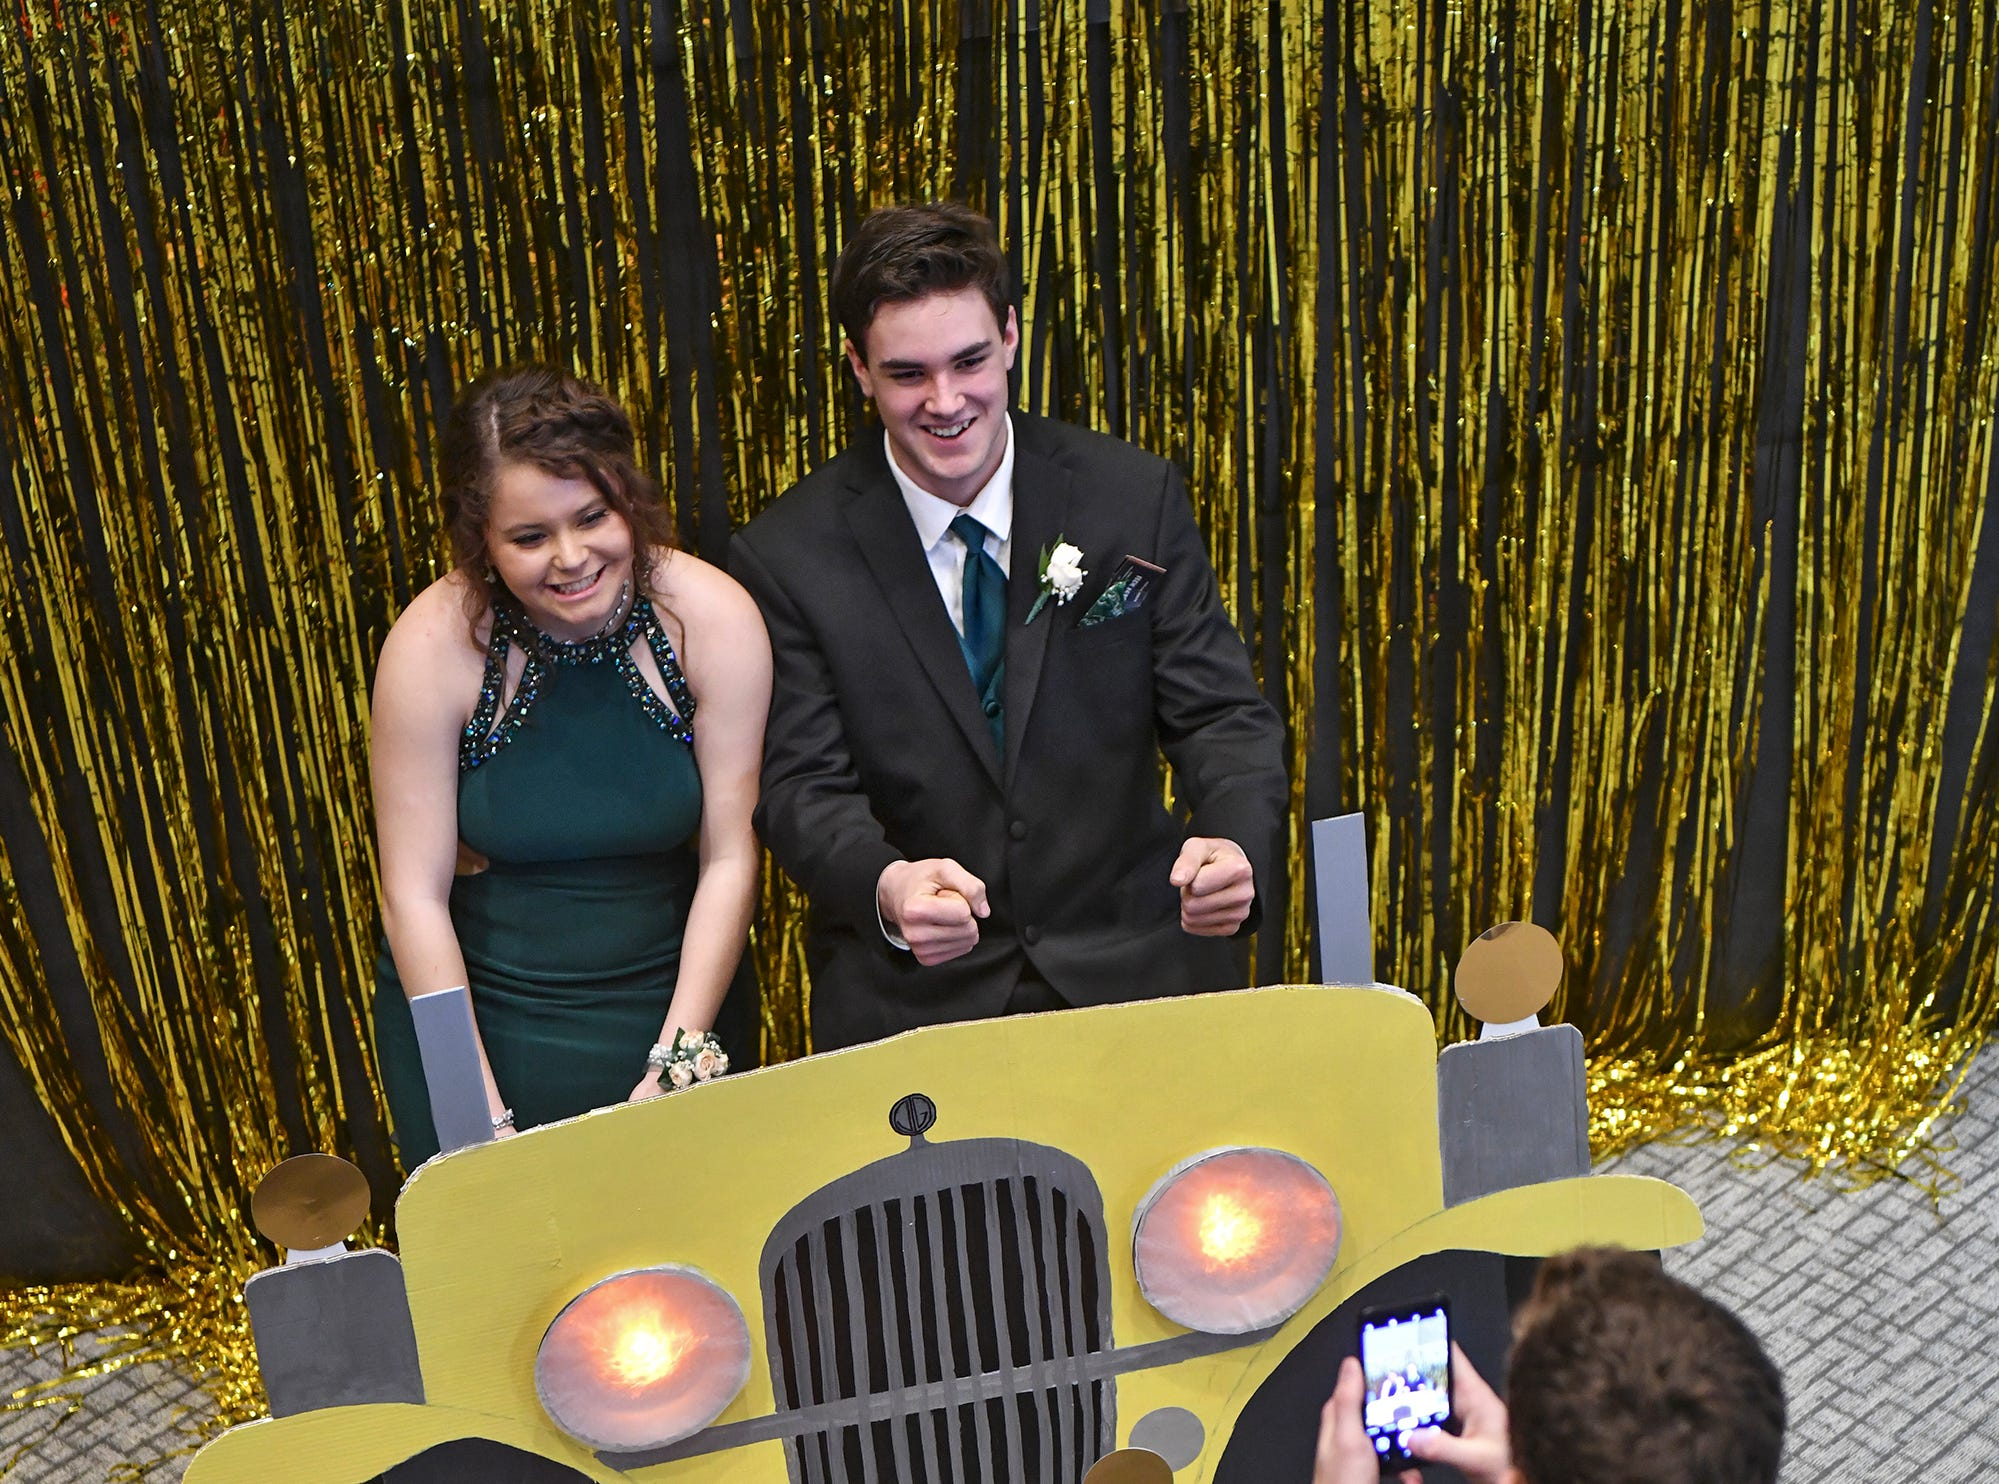 Couples pose for photographs during prom Saturday, April 6, at Albany High School.